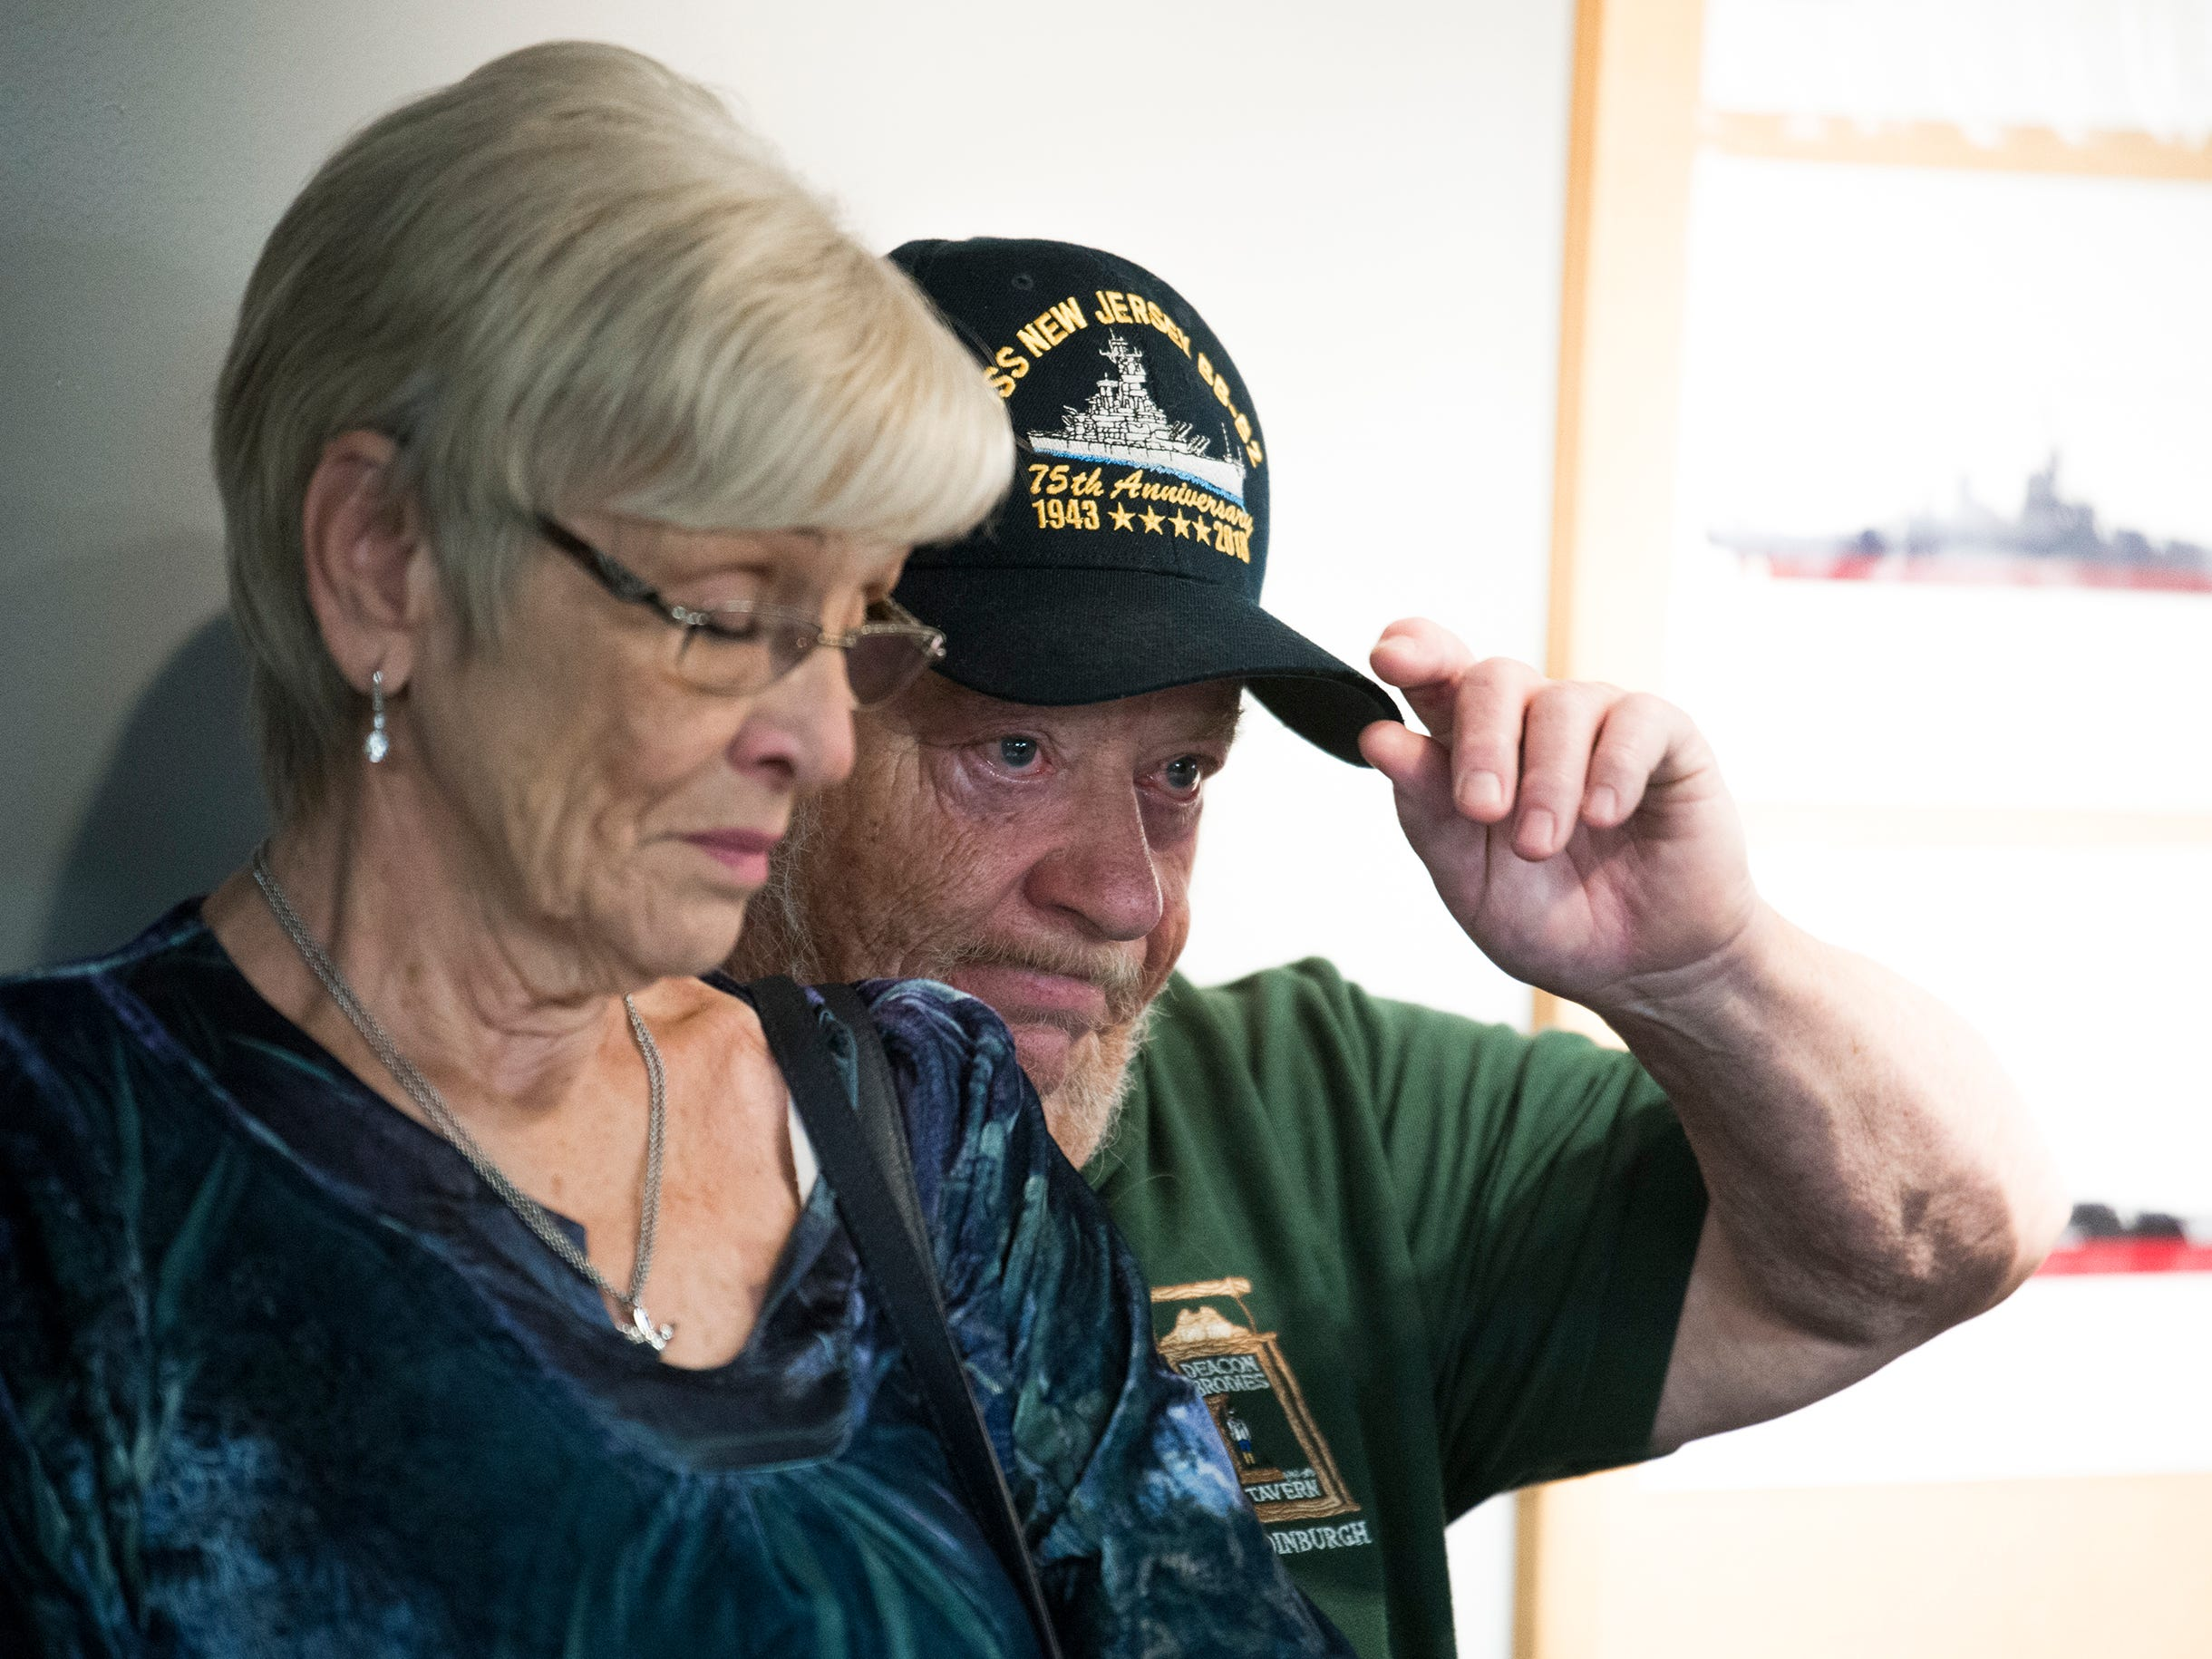 Scott Hall, right, tips his cap alongside his wife Denise Hall during the unveiling of Jason's Kids Kompartment Thursday, March 21, 2019 aboard the USS New Jersey battleship in Camden, N.J. Their son Jason Hall was the ship's curator and came up with the idea for the play area. Jason died of cancer in June 2018.